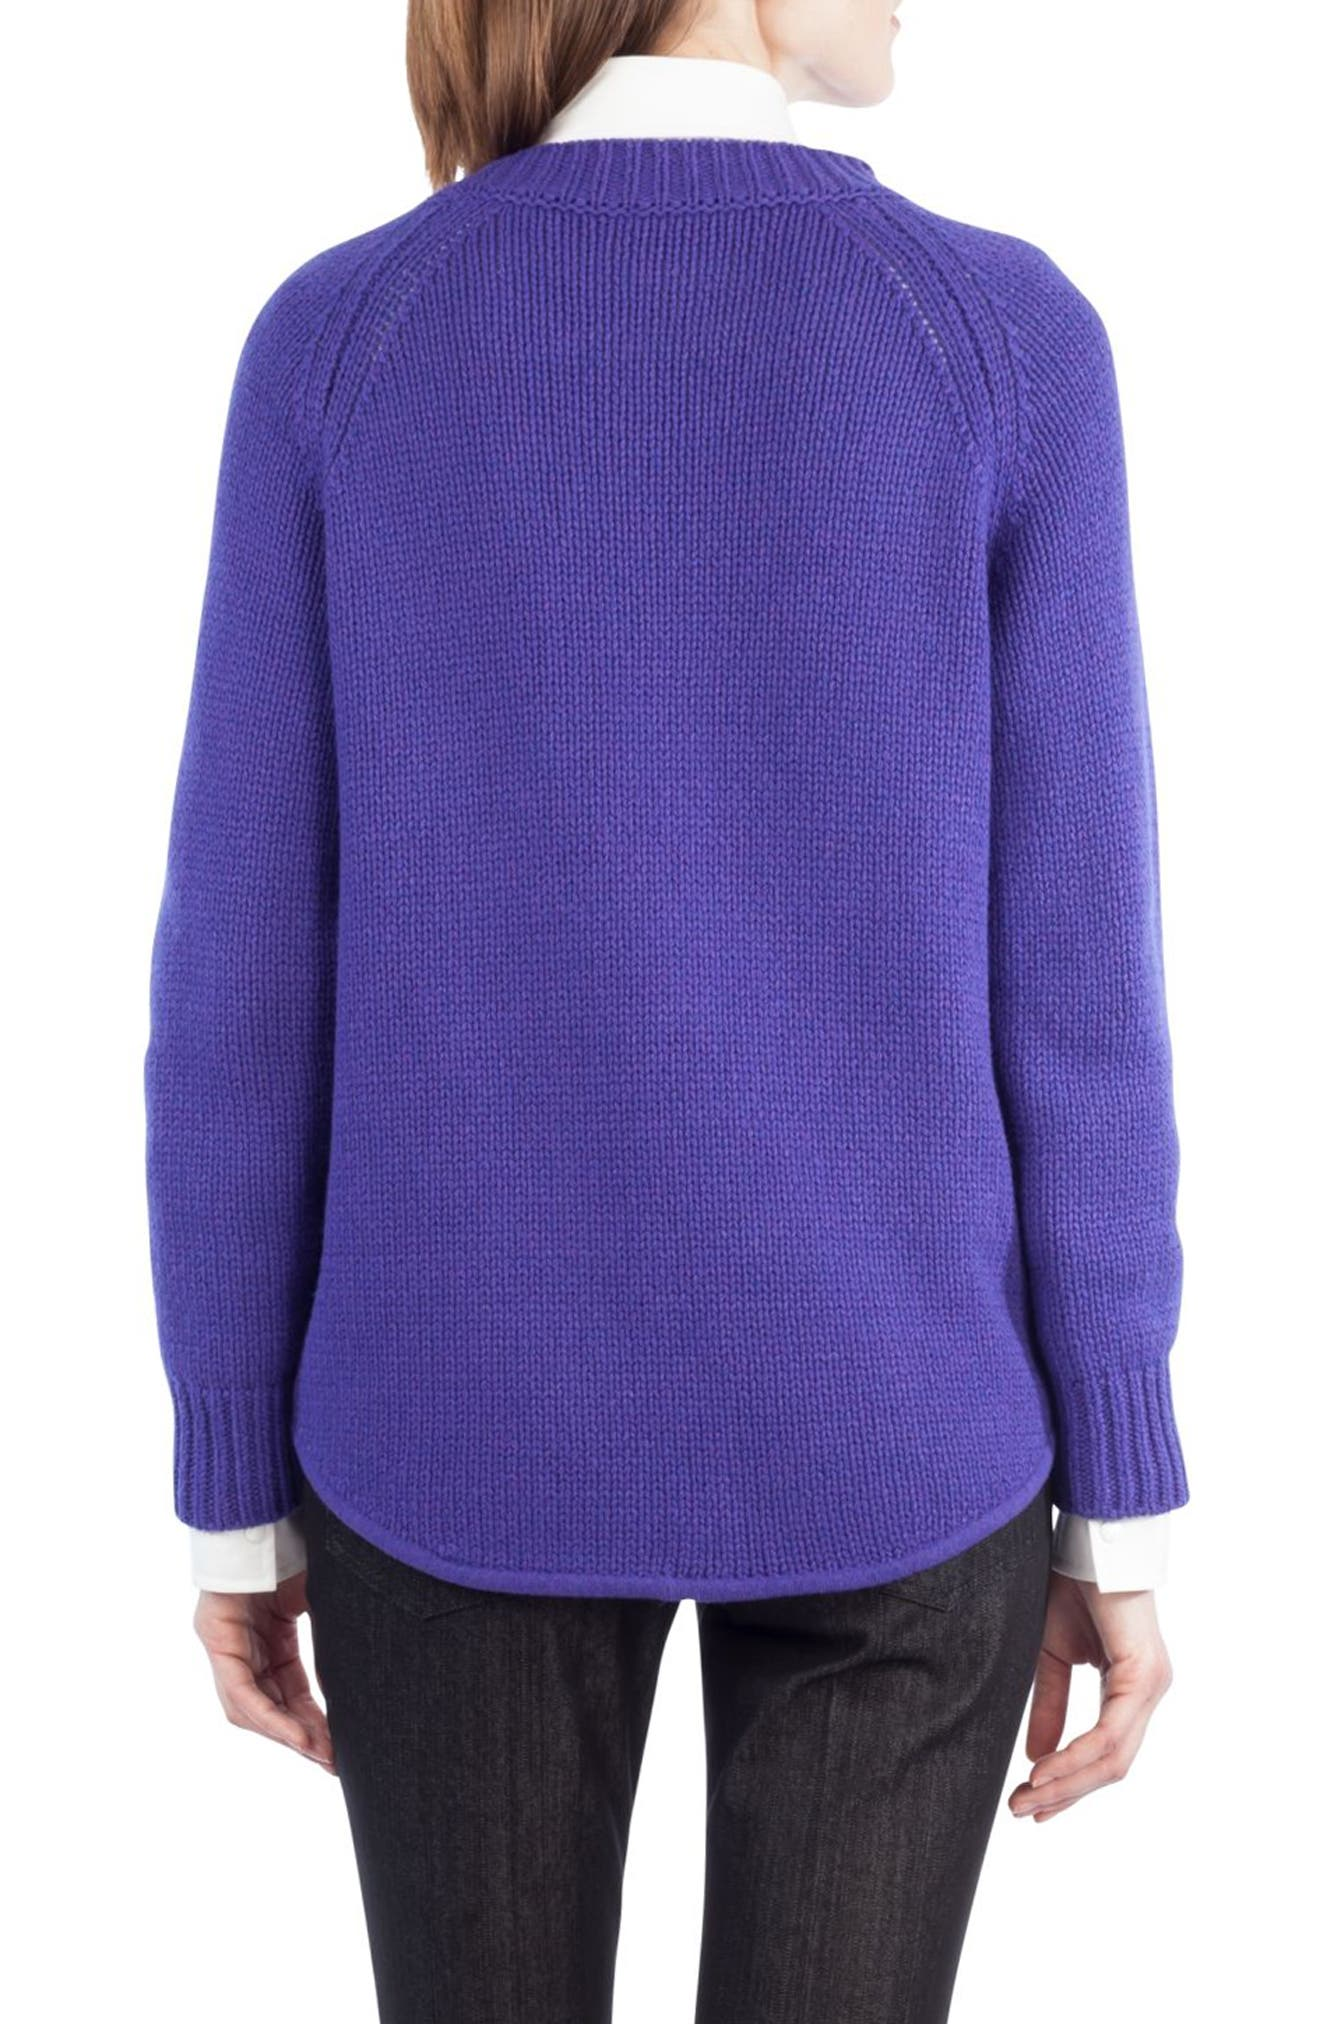 Quadrant Circle Cashmere Blend Pullover,                             Alternate thumbnail 4, color,